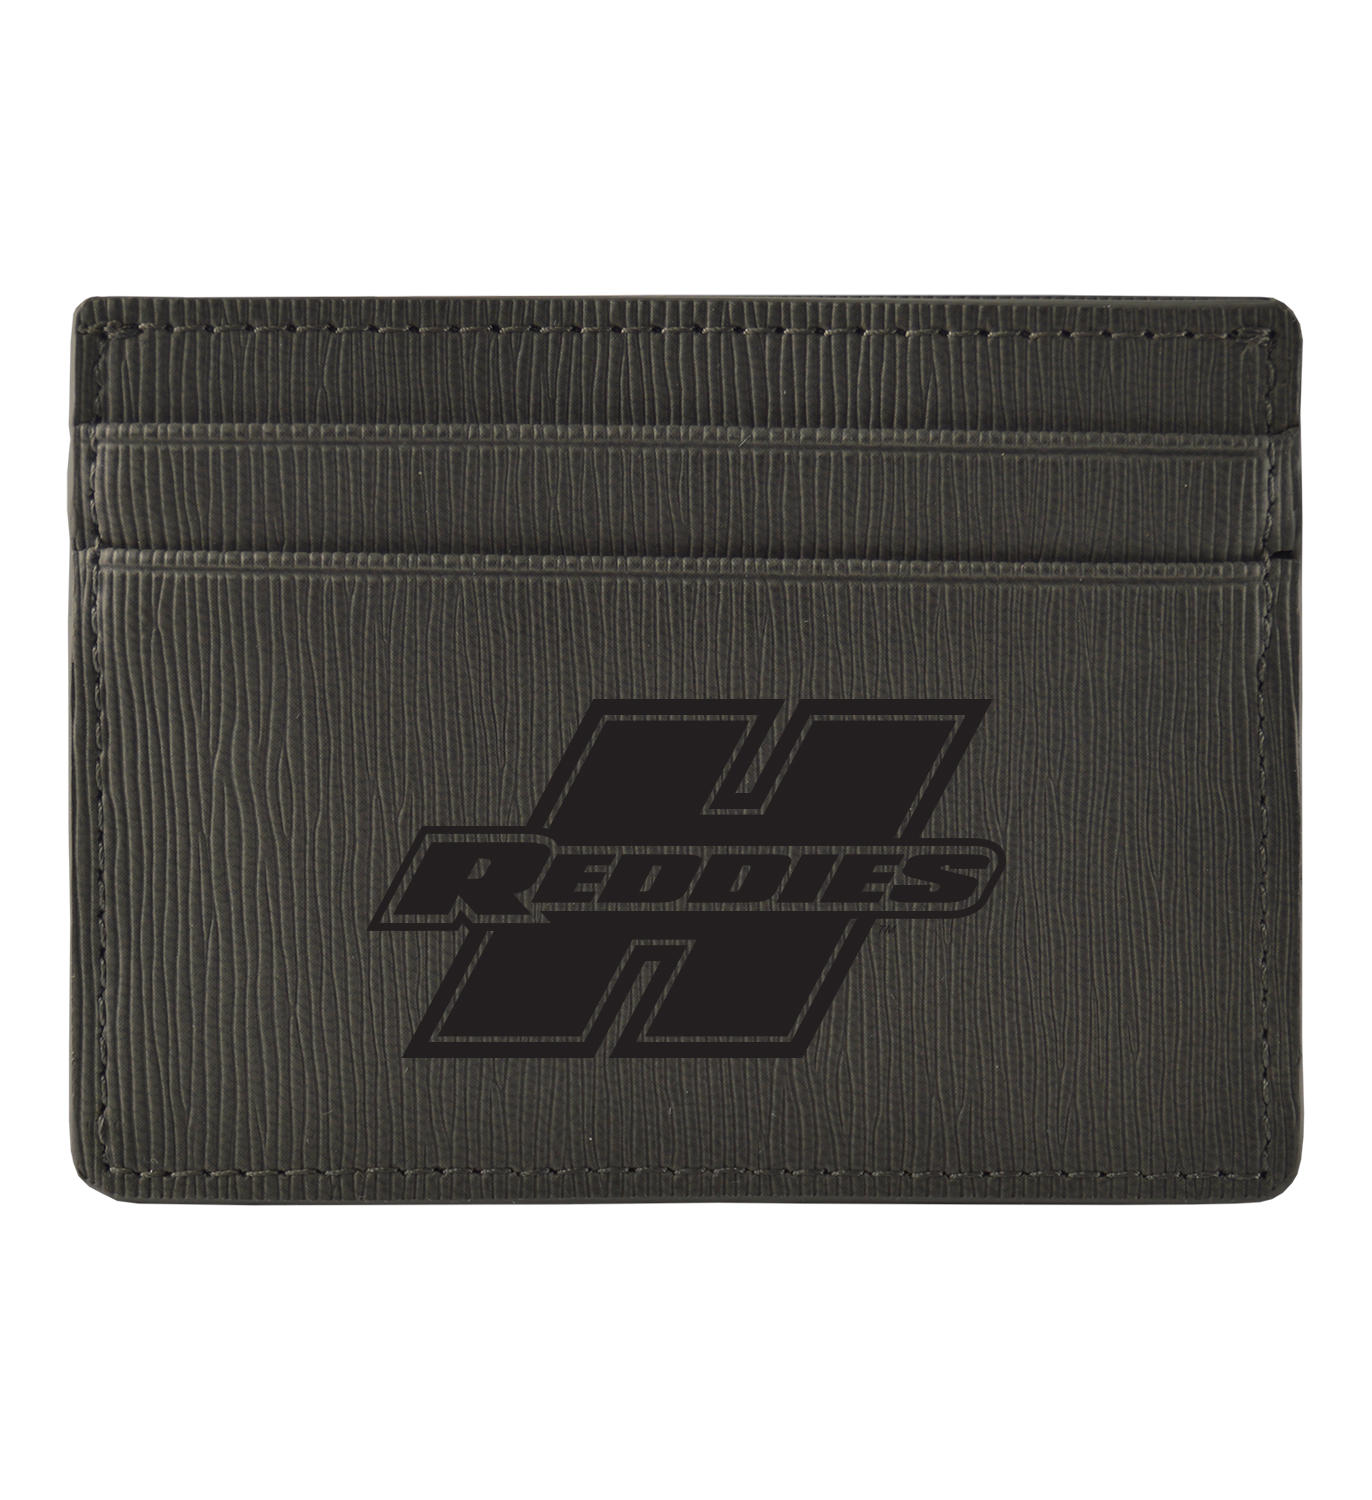 Henderson Reddies Textured Slim Card Wallet